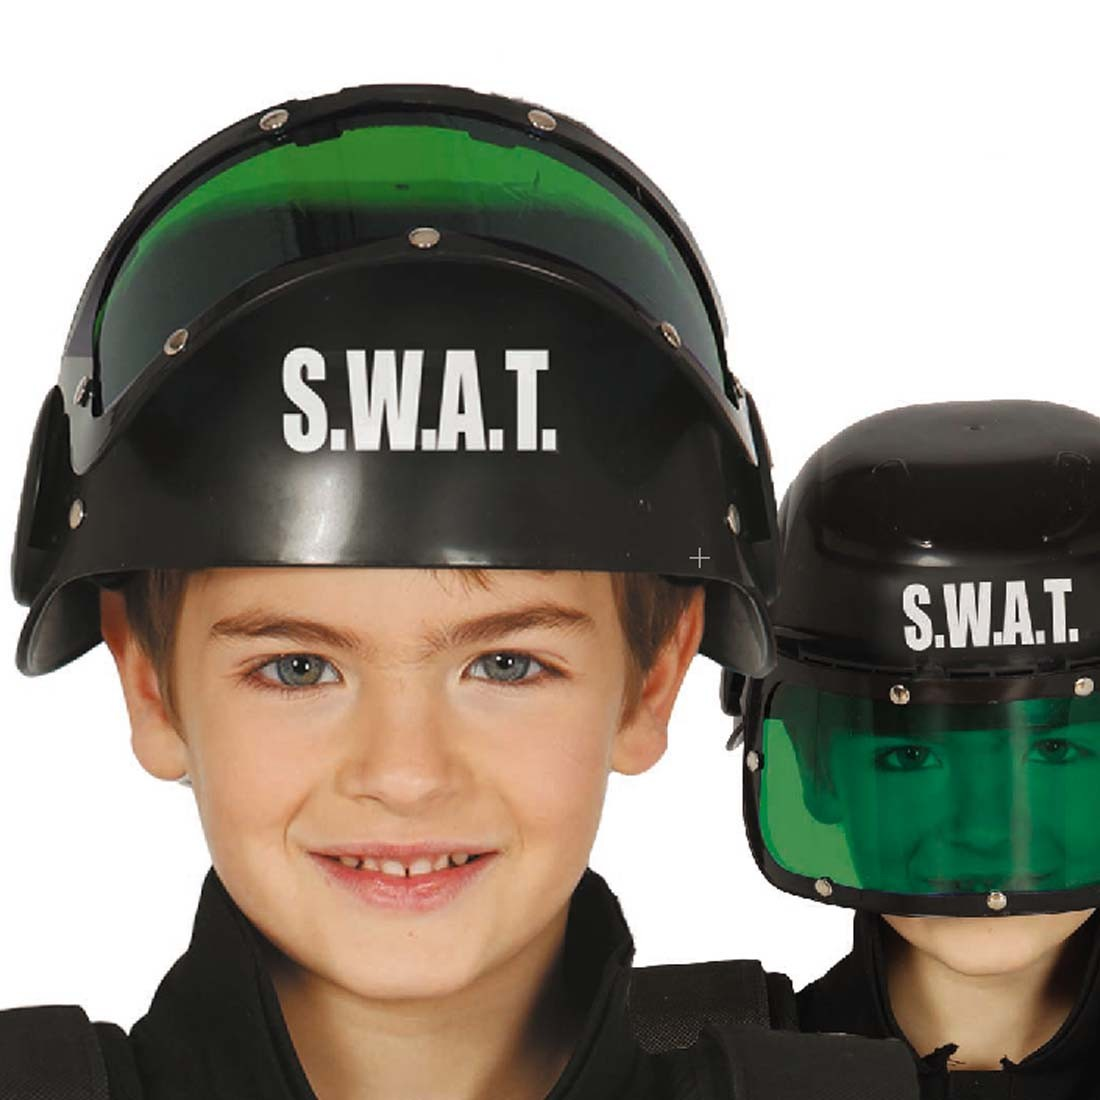 swat kinderhelm polizeihelm kinder 7 99. Black Bedroom Furniture Sets. Home Design Ideas